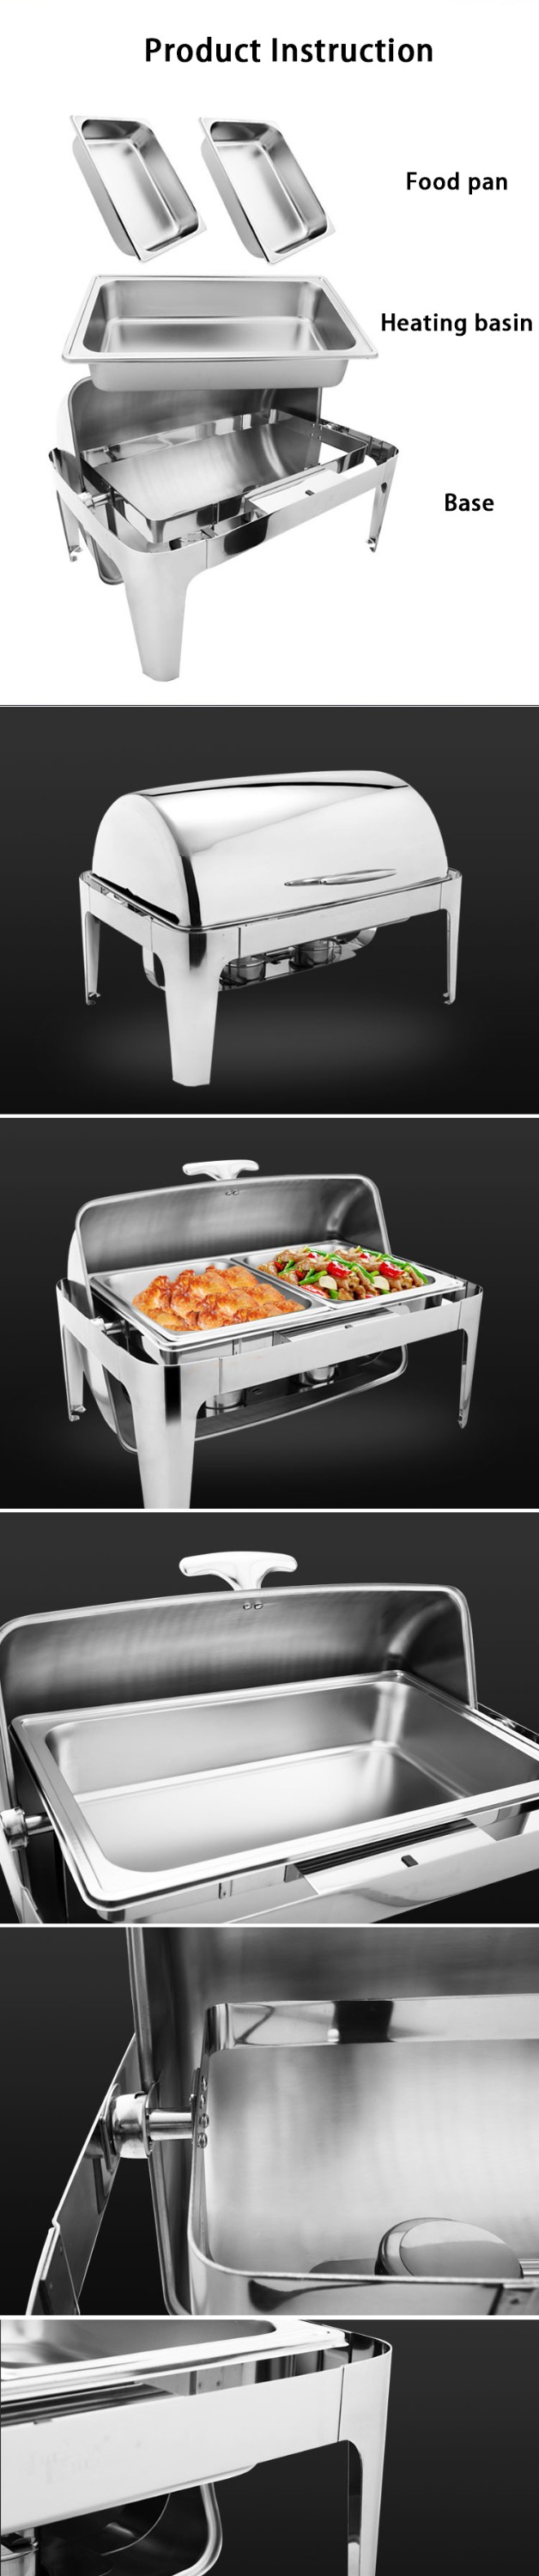 MUK hotel restaurant round design stainless steel buffet dinner chafing dish